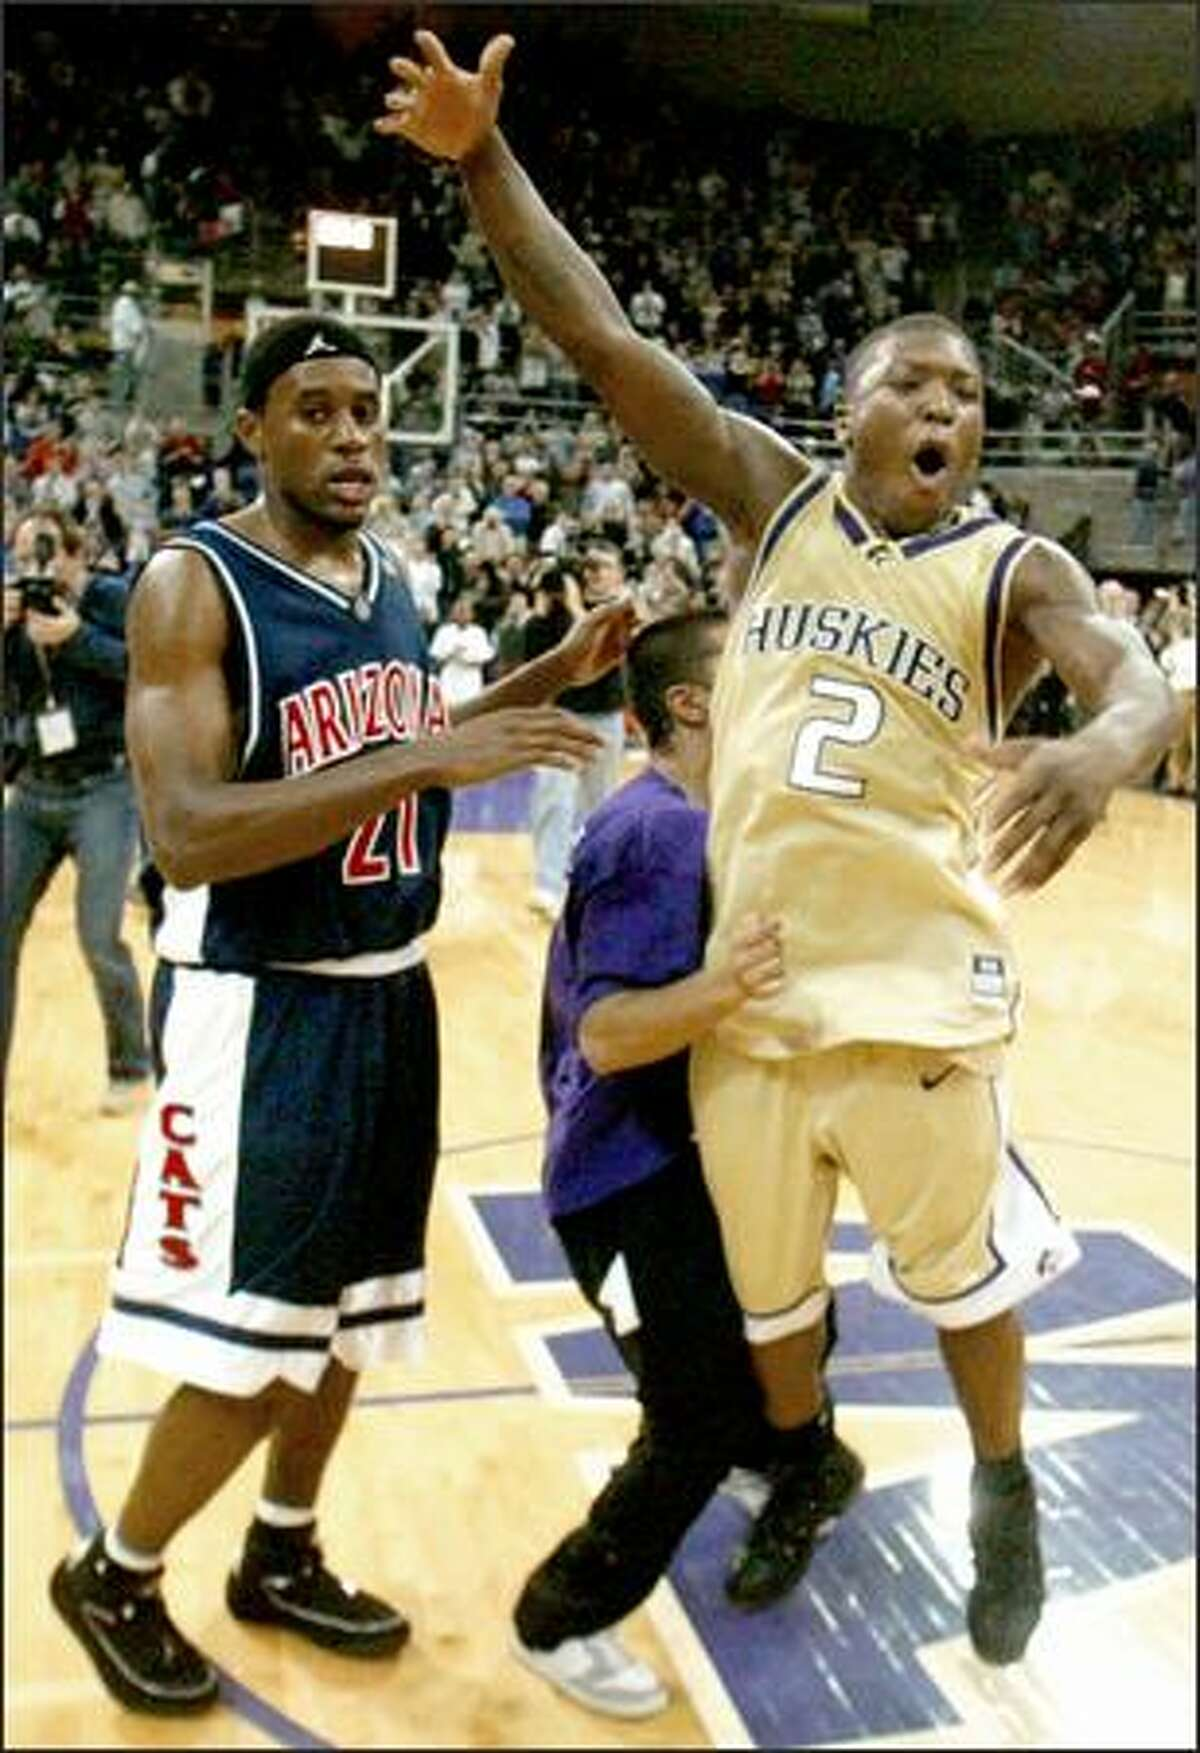 Nate Robinson celebrates the Huskies' win over Arizona as the Wildcats' Hassan Adams finds his way off the floor.